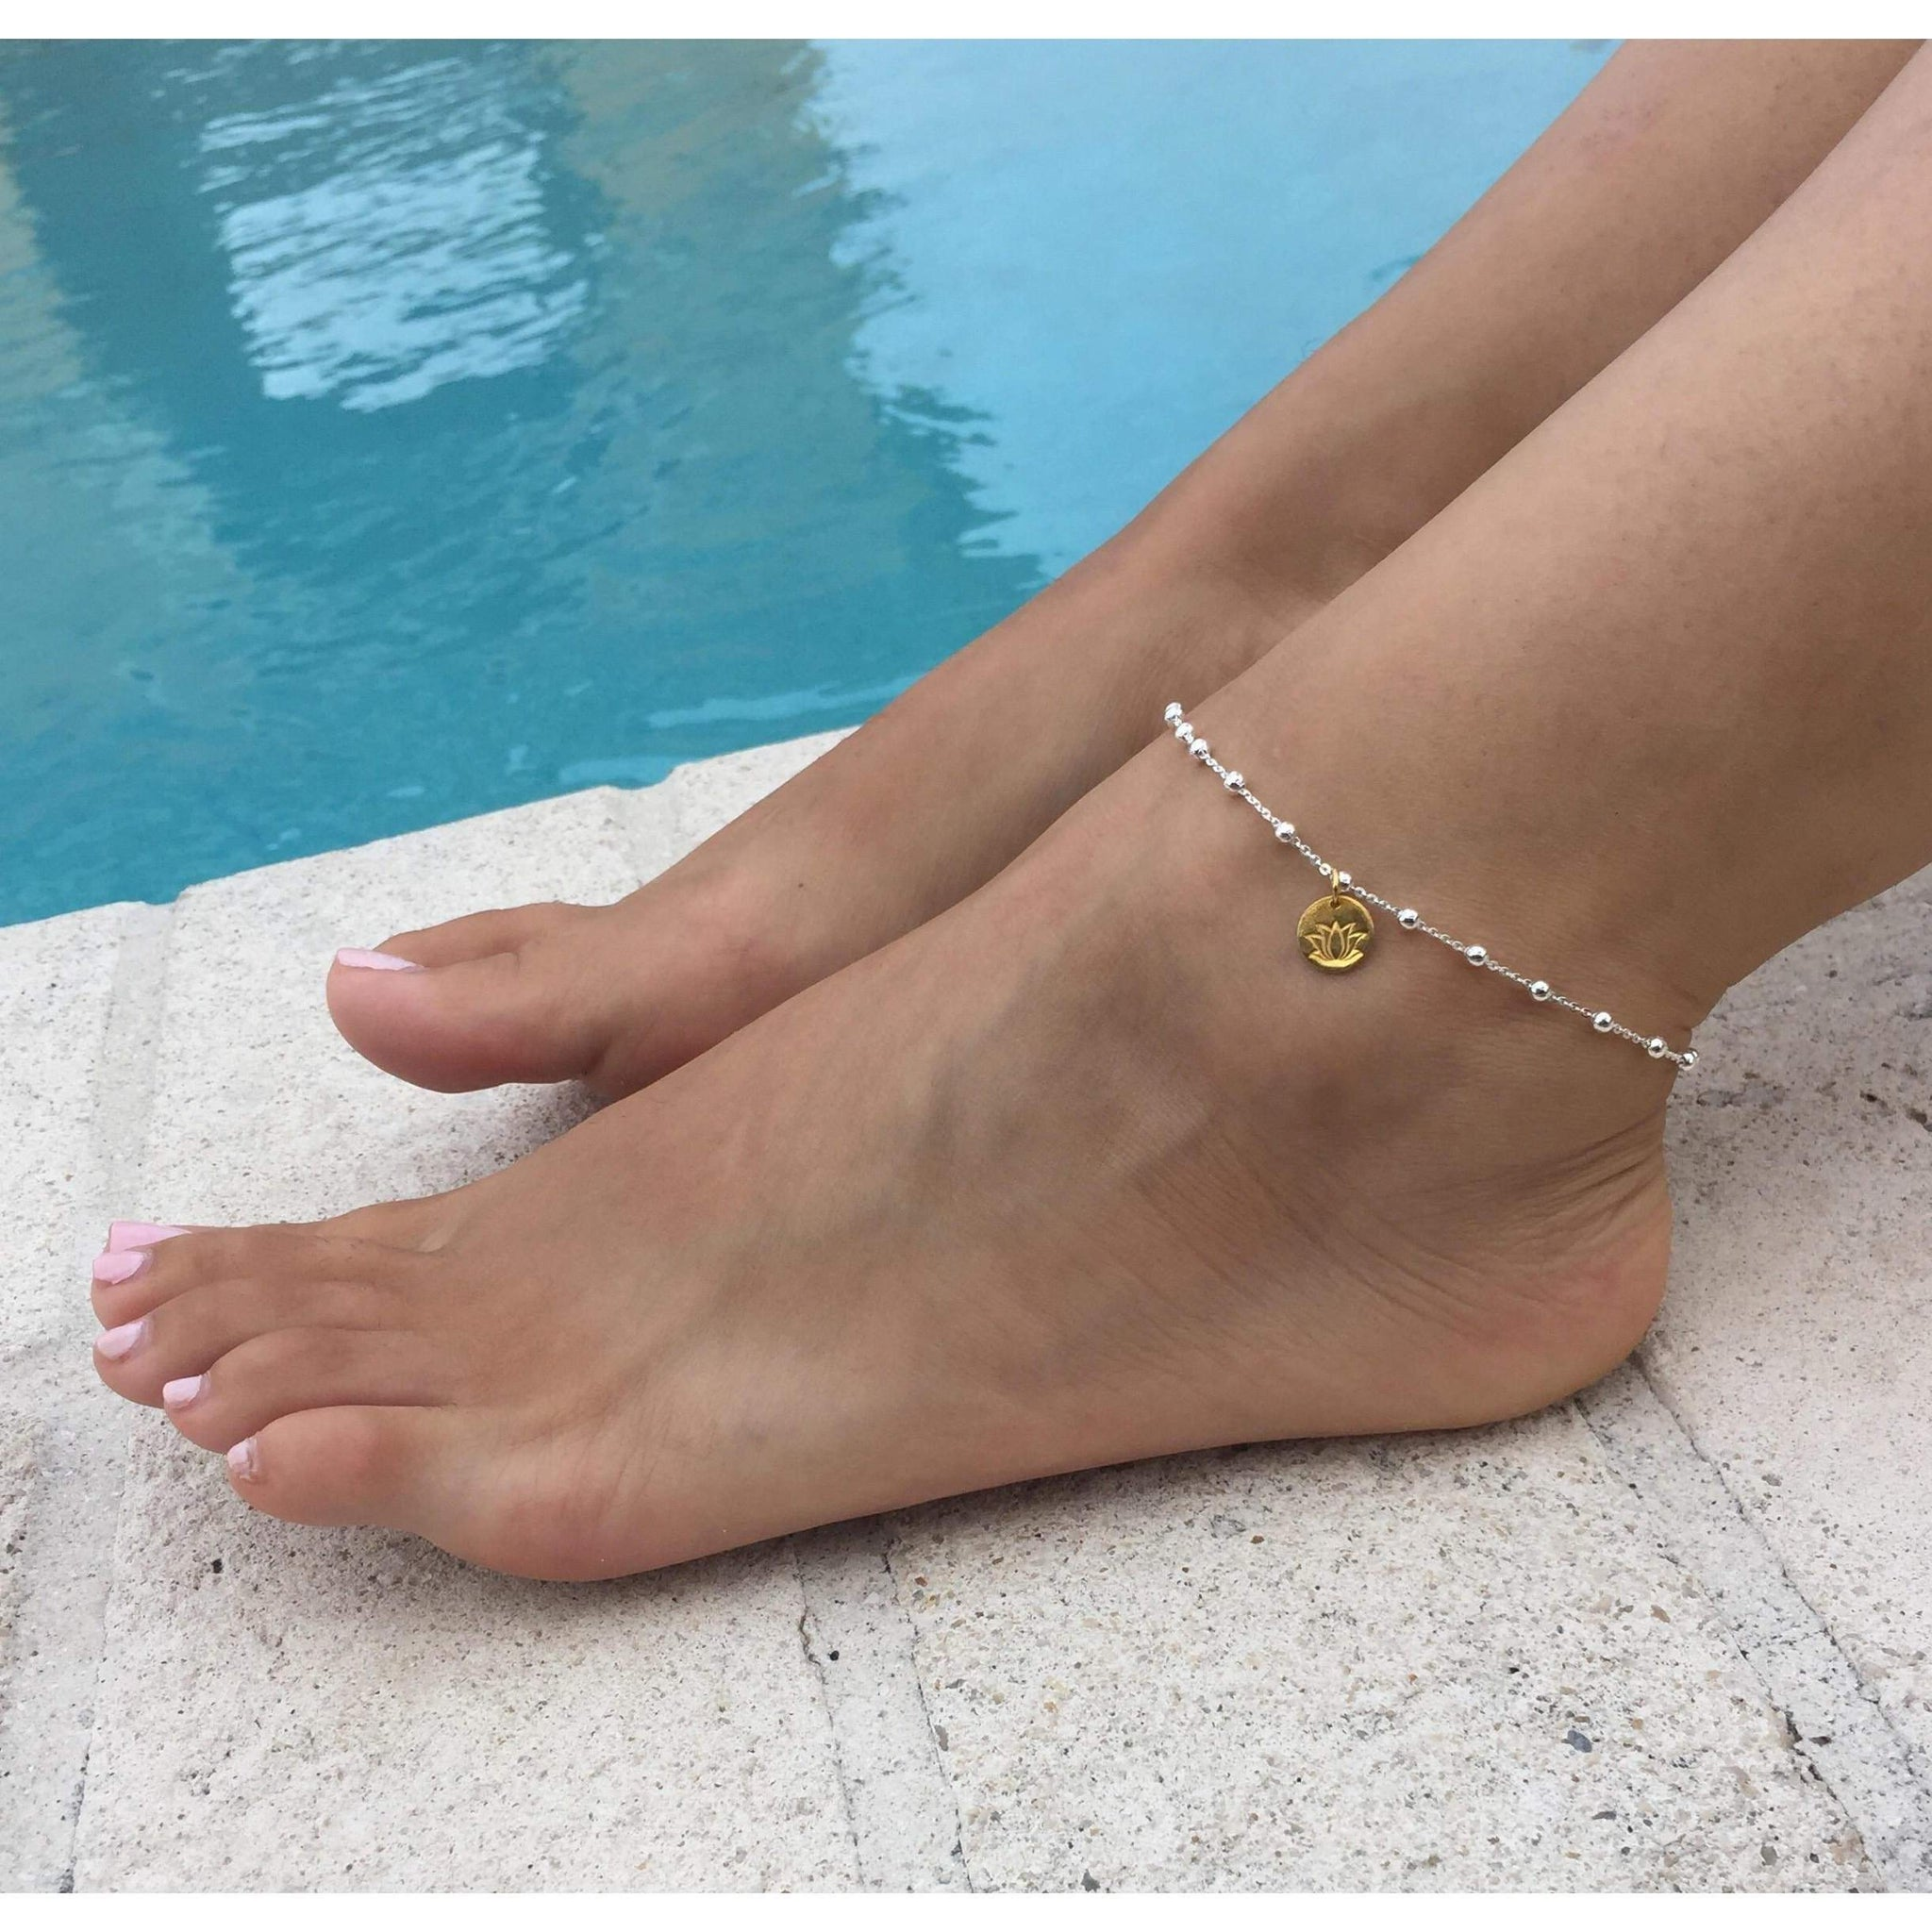 styleskier ankle yrceusm around your rose anklet a com gold wonderful